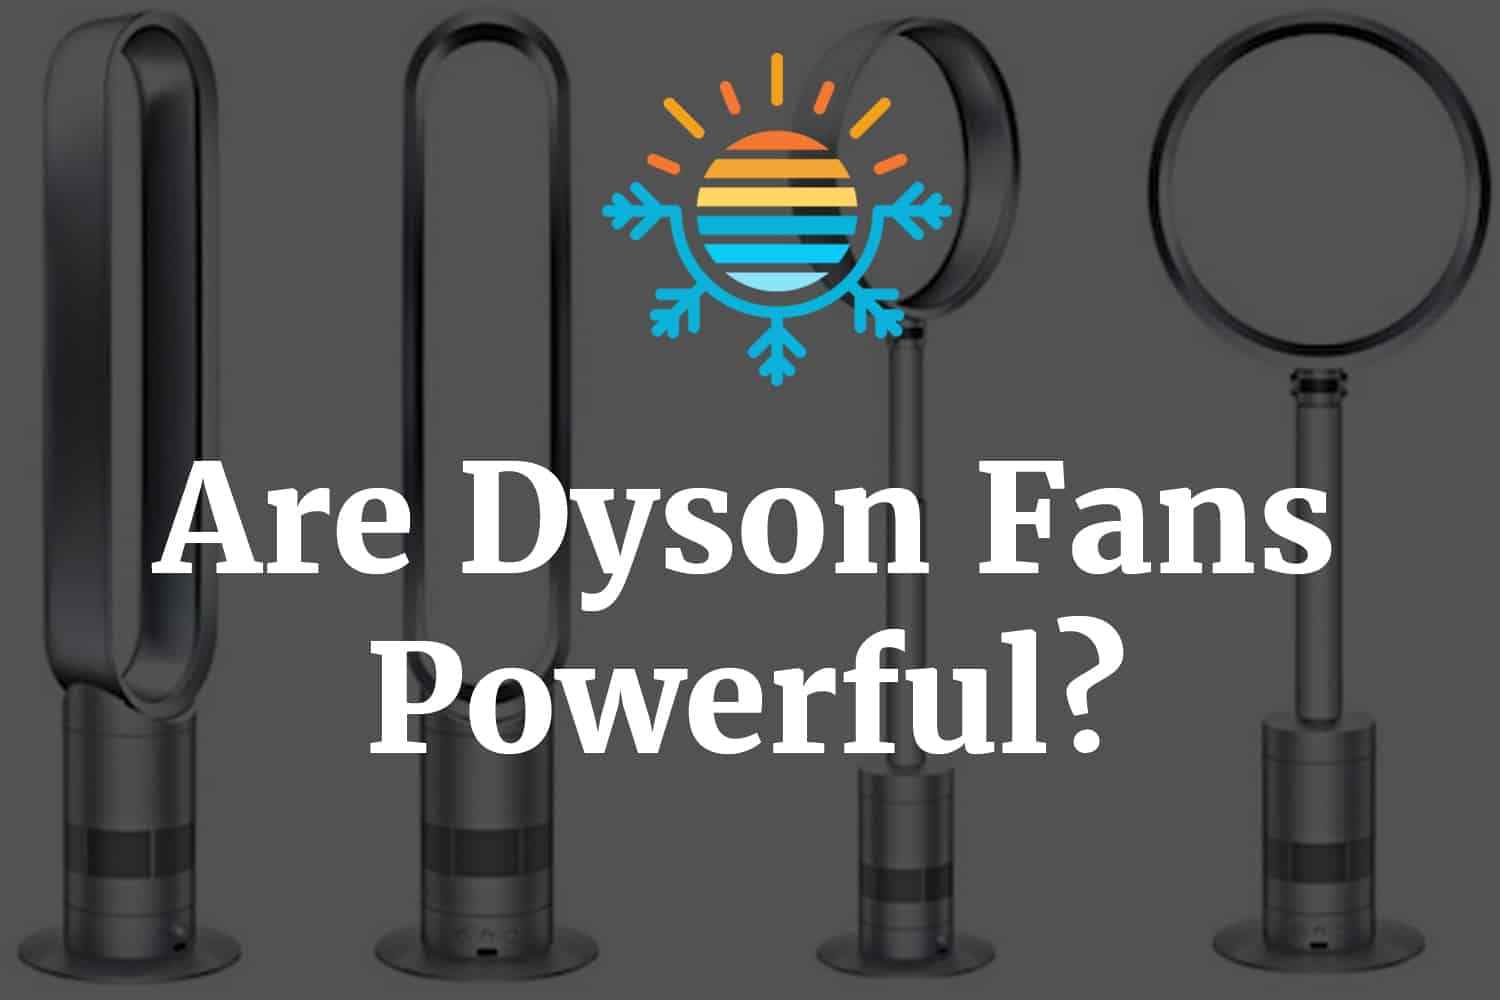 Are Dyson fans are powerful?